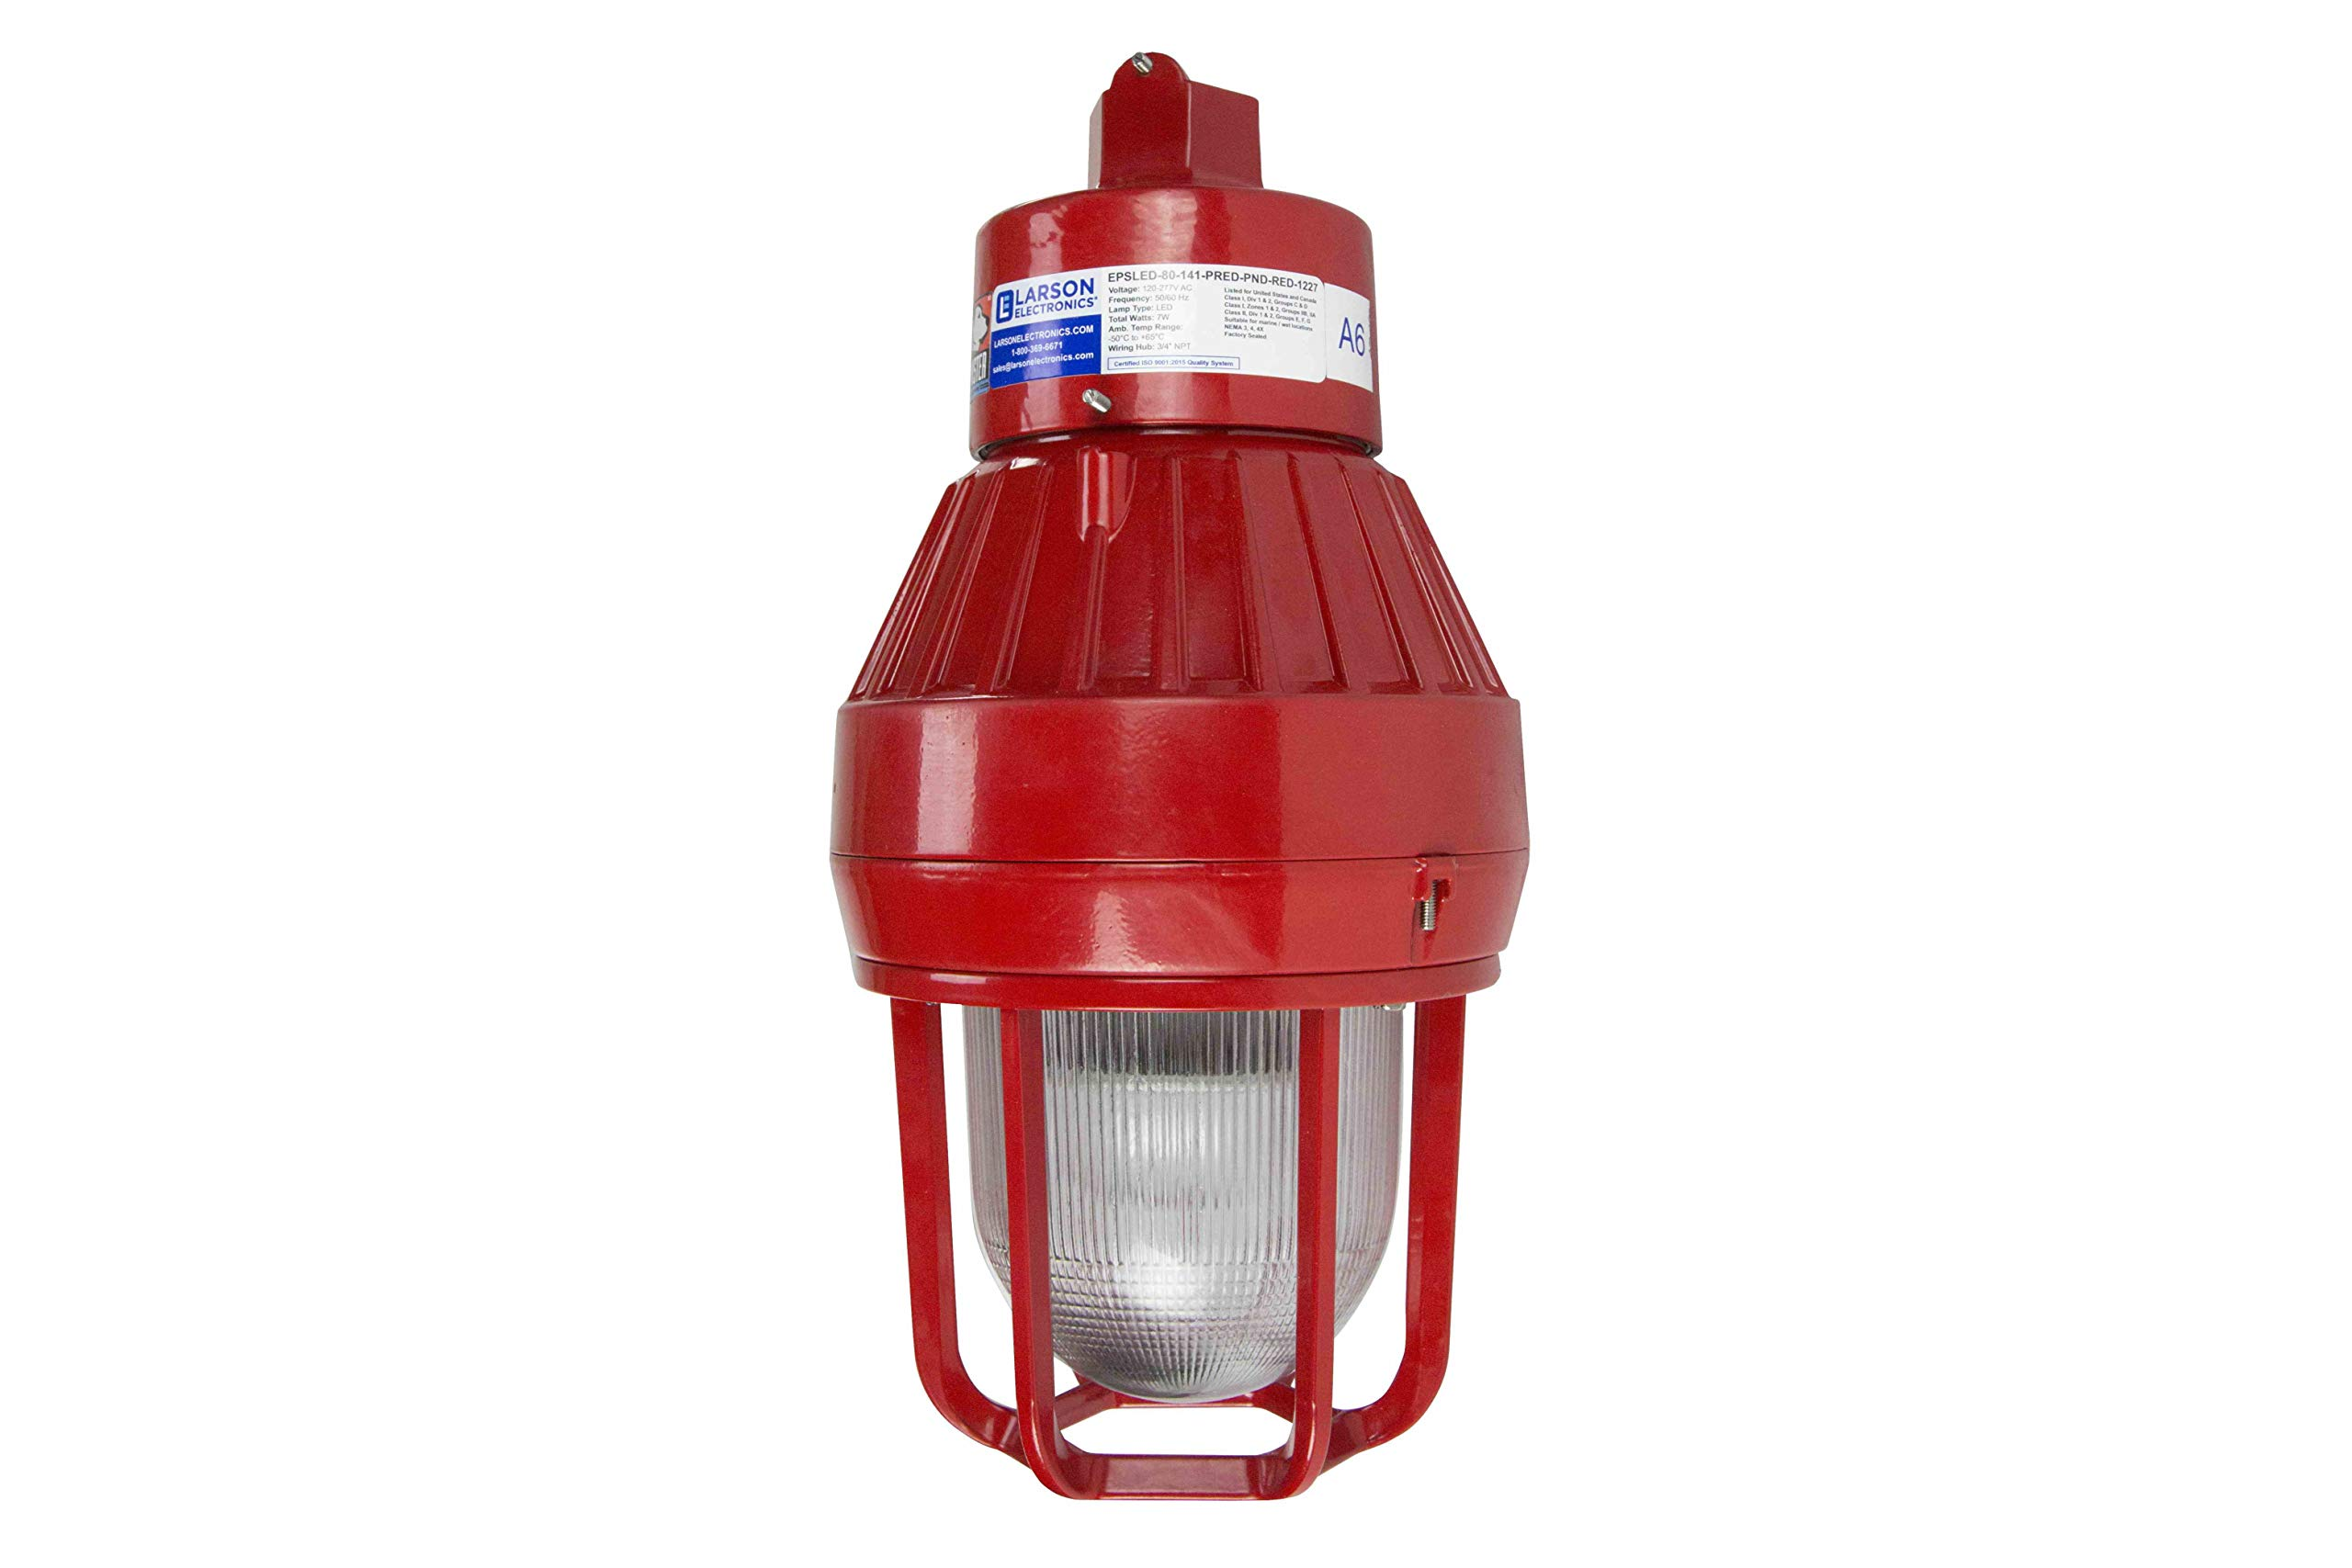 Explosion Proof LED Strobe Light - Red Housing - 120-277V AC or Low Voltage - C1D1 - CSA Listed